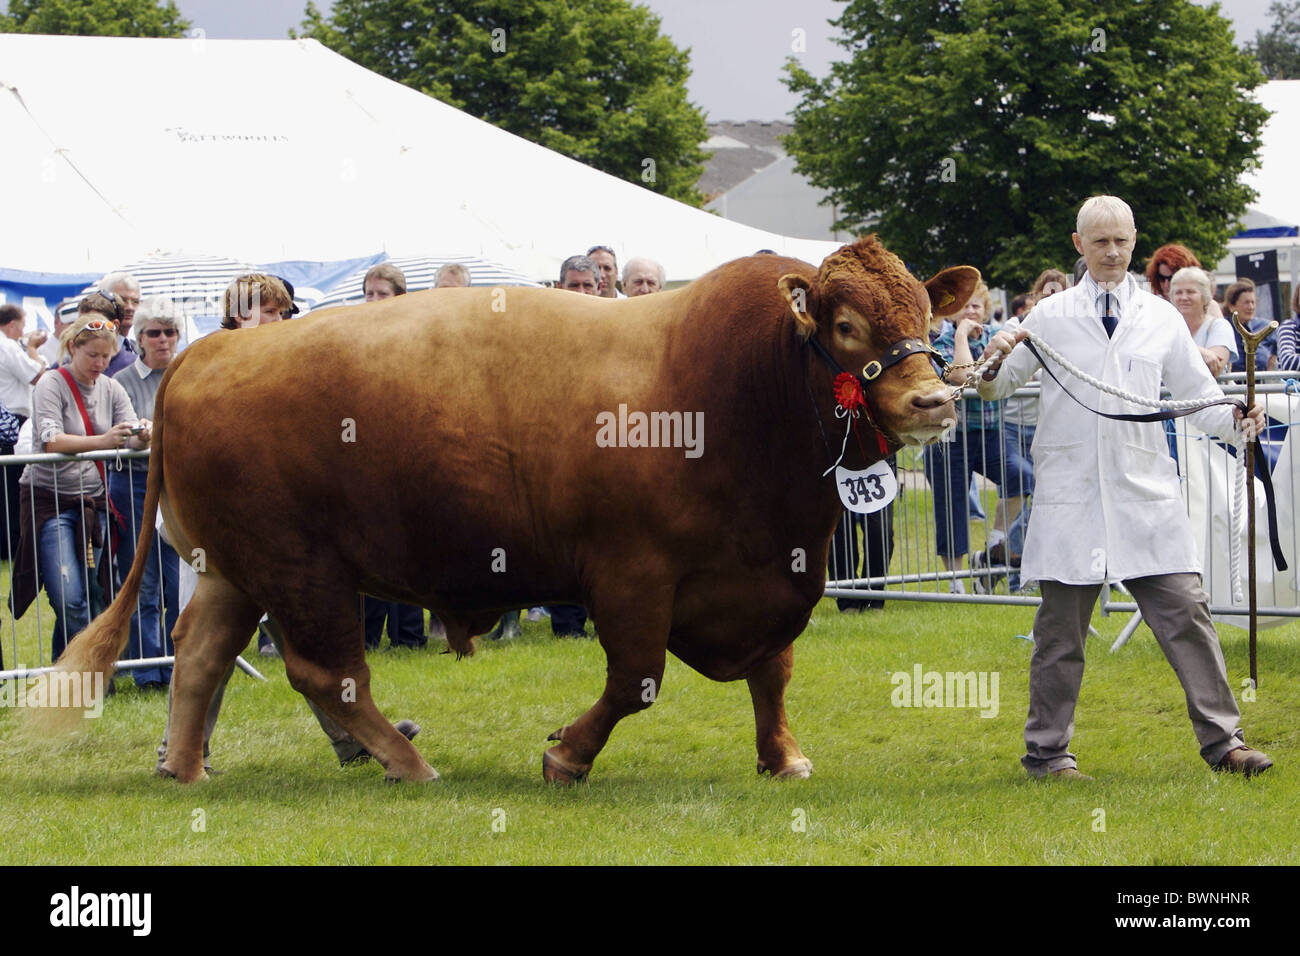 A South Devon Bull at the Three Counties Show in its 50th year at the Malvern Showground in Worcestershire - Stock Image